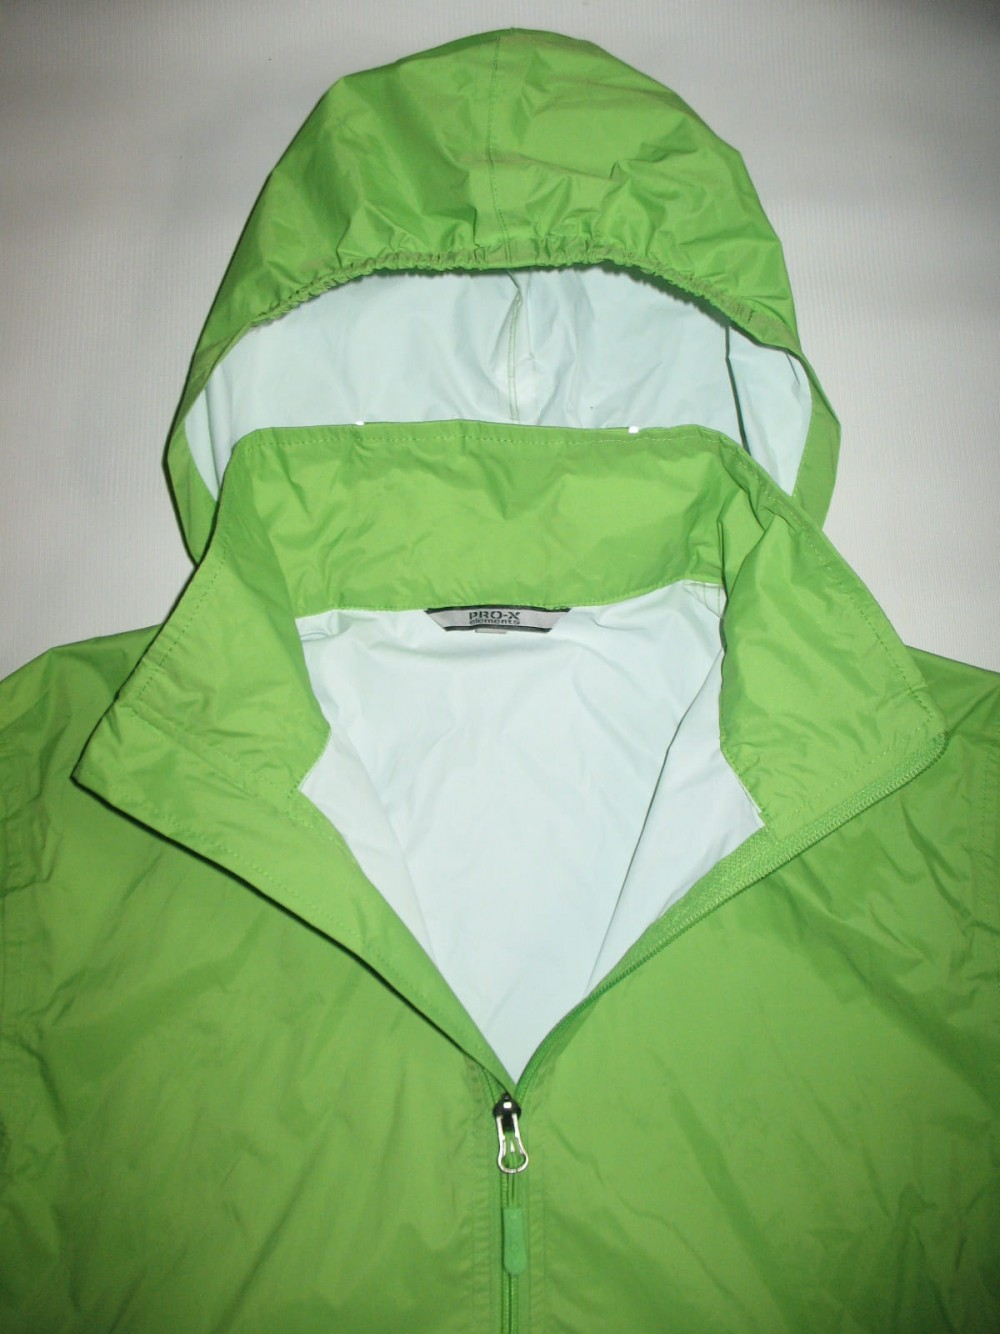 Куртка PRO-X elements waterproof green jacket (размер 164см/S) - 4